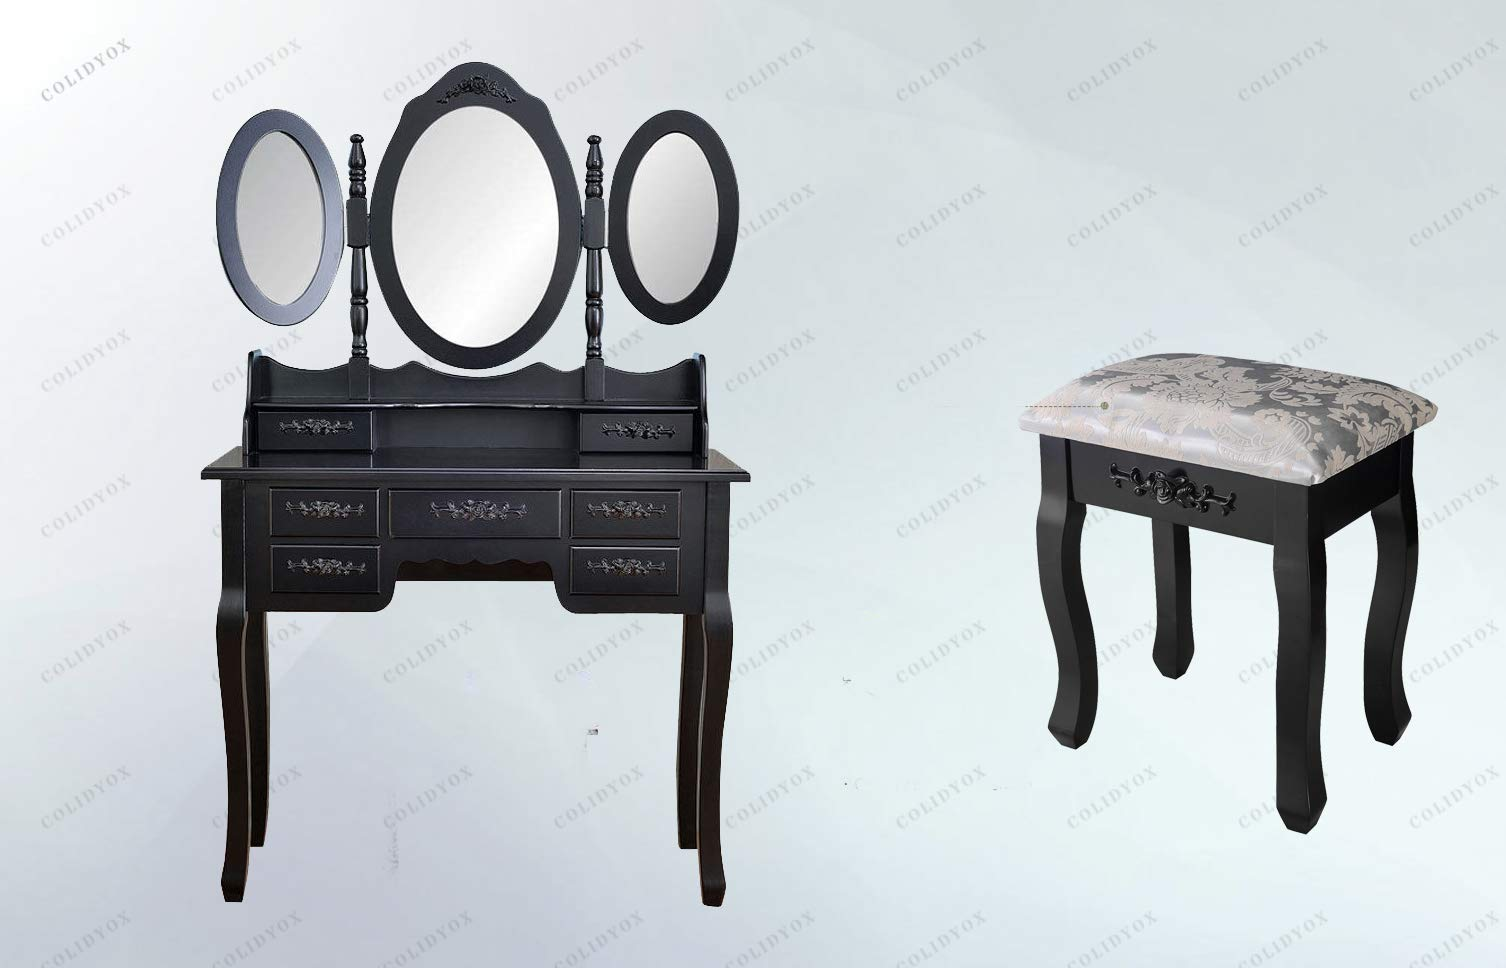 COLIDOX_ and Fashionable Dressing Table,Dressing Table Consists of Three Oval Mirrors, Two Storage Cases, Five Drawers, Simplistic Queen Anne Legs